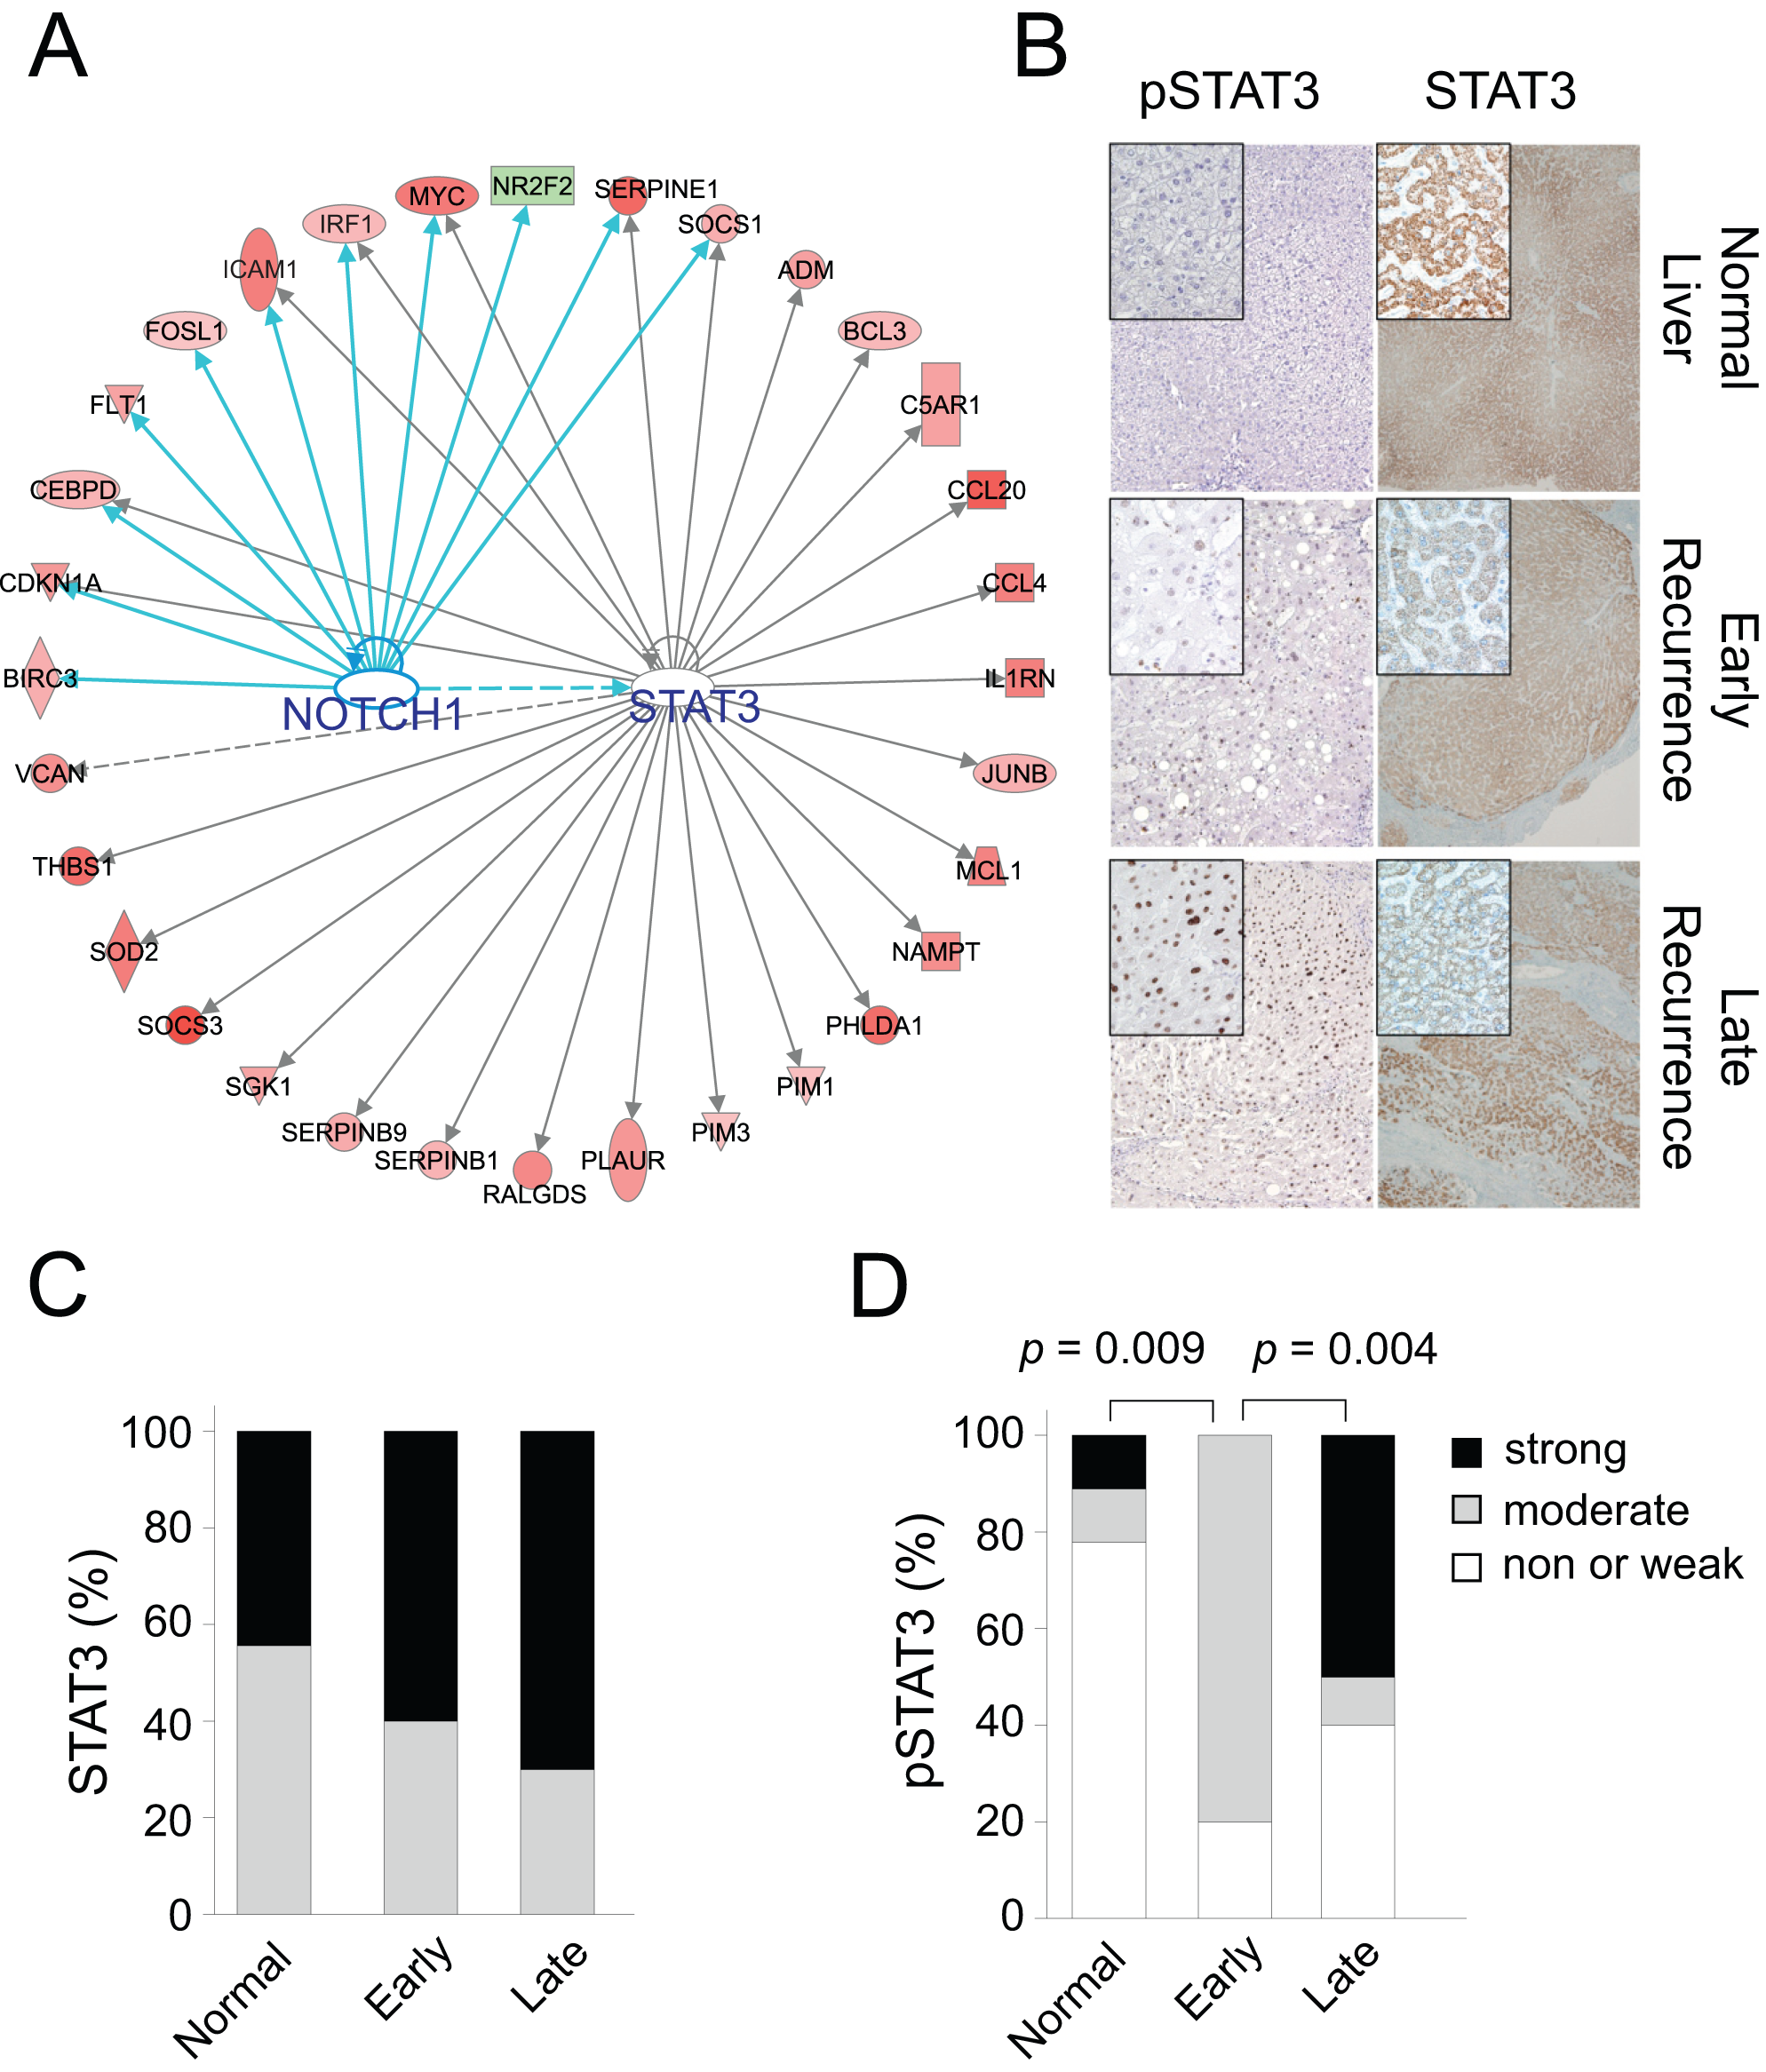 STAT3 and NOTCH1 networks in the hepatic injury and regeneration signature.